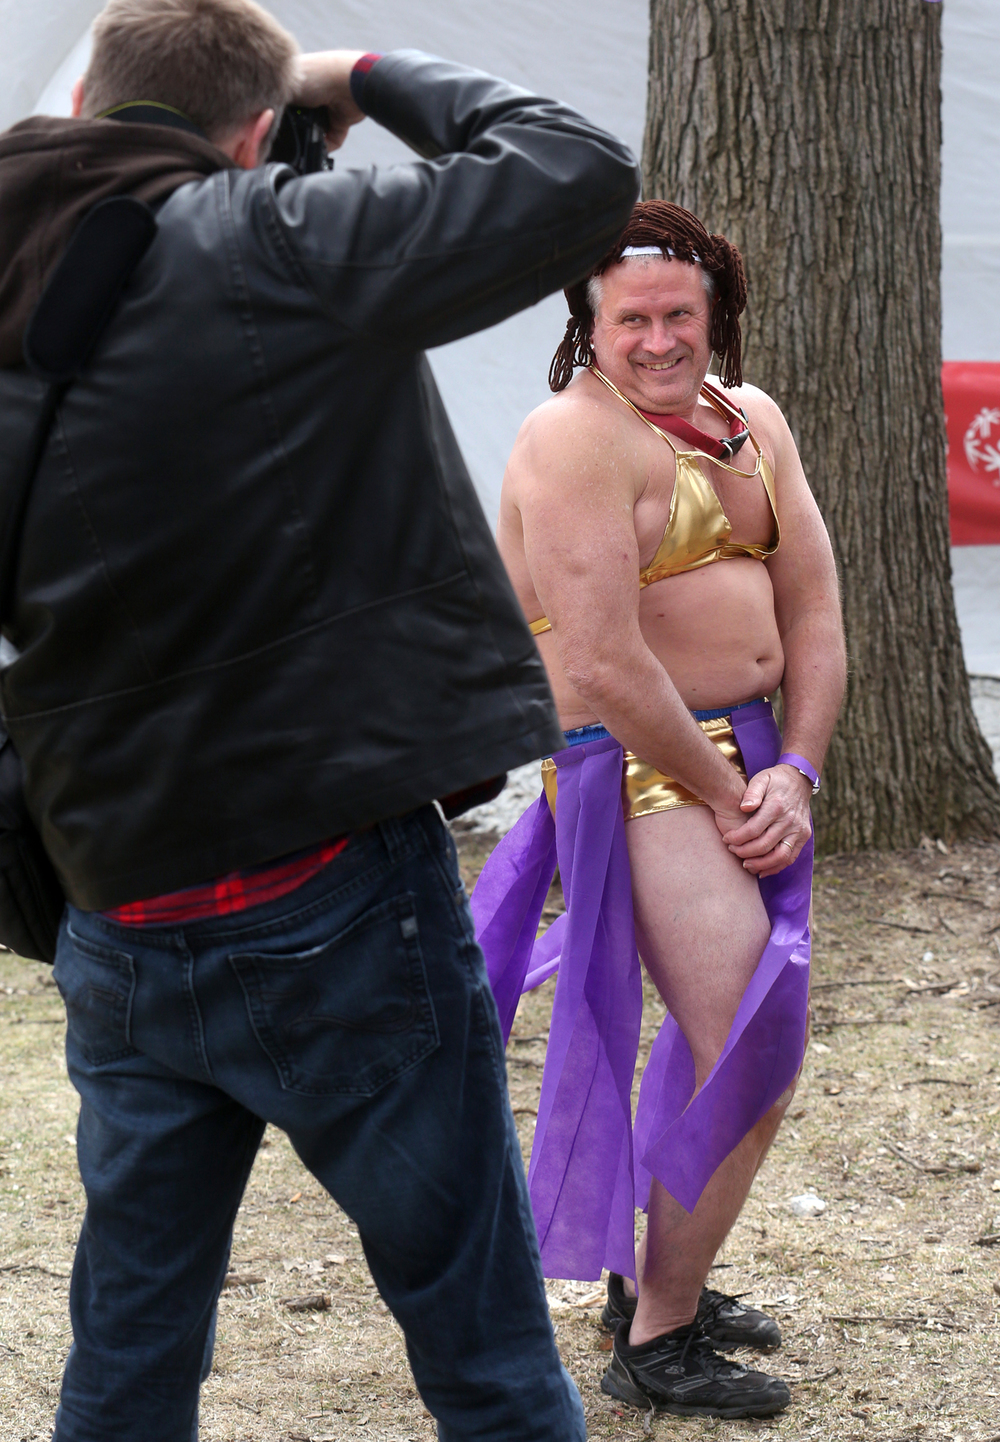 Francis Drnjevic of Girard was a popular subject for those taking photos before the start of the plunge. David Spencer/The State Journal Register